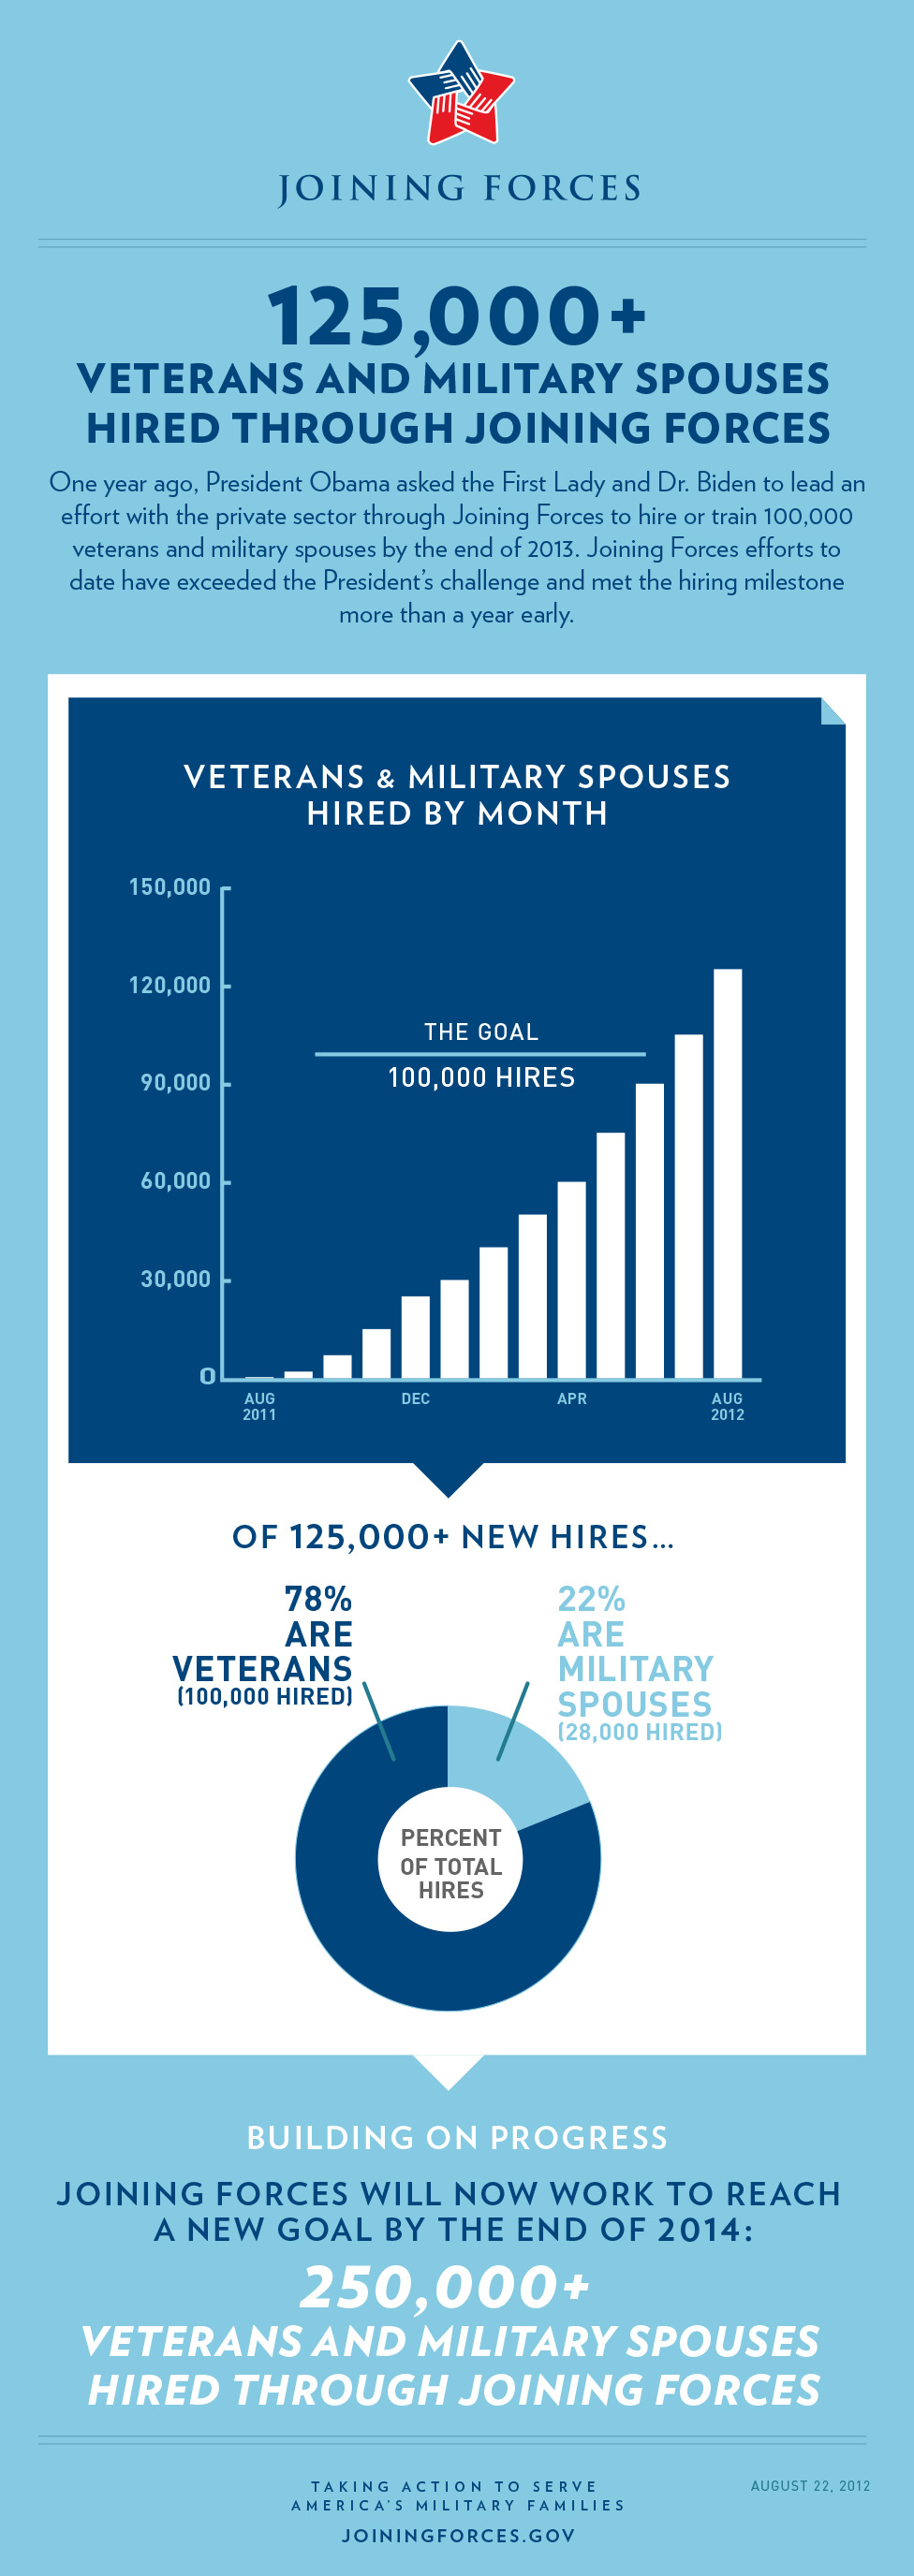 2,000 companies had hired or trained an amazing 125,000 veterans and military s